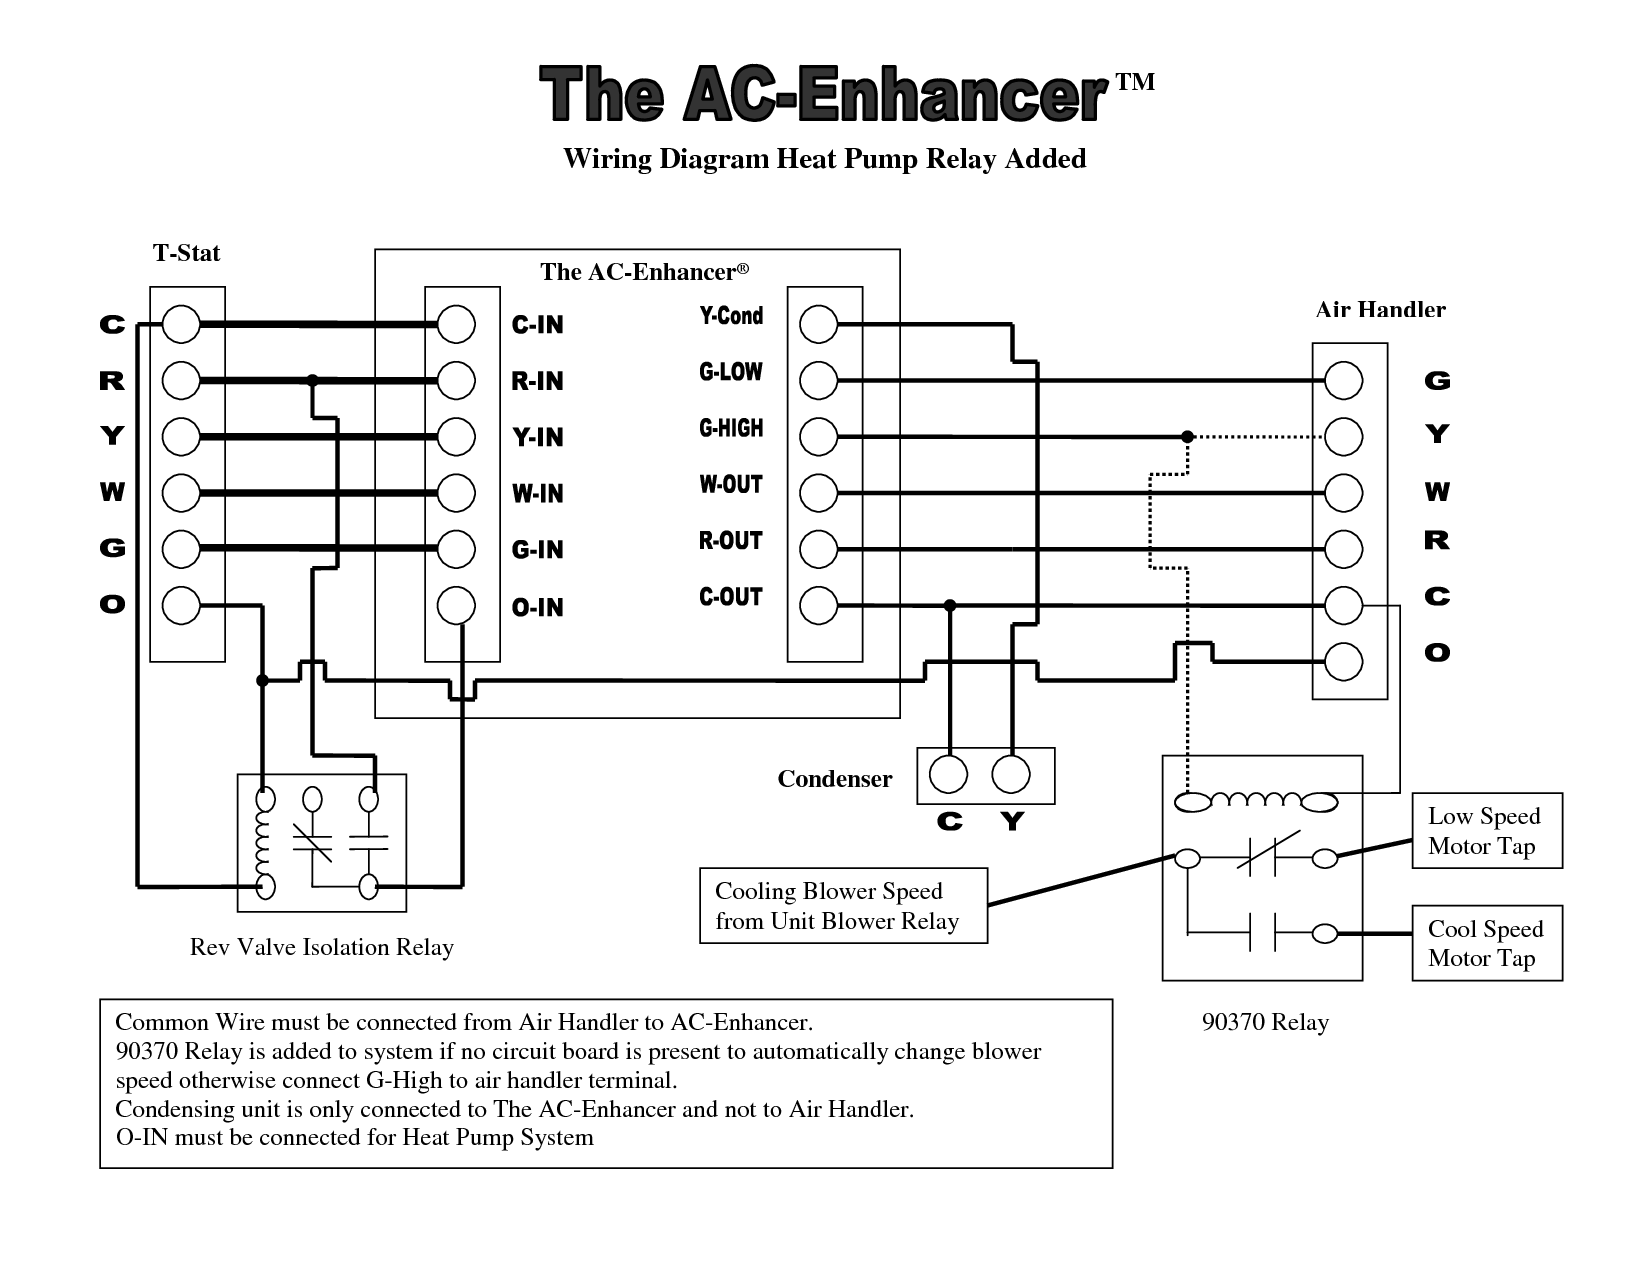 5a0e10d9c7d3fced962dfa588f6c0c31 hvac wiring diagram payne hvac wiring diagrams \u2022 wiring diagrams bard heat pump wiring diagram at fashall.co